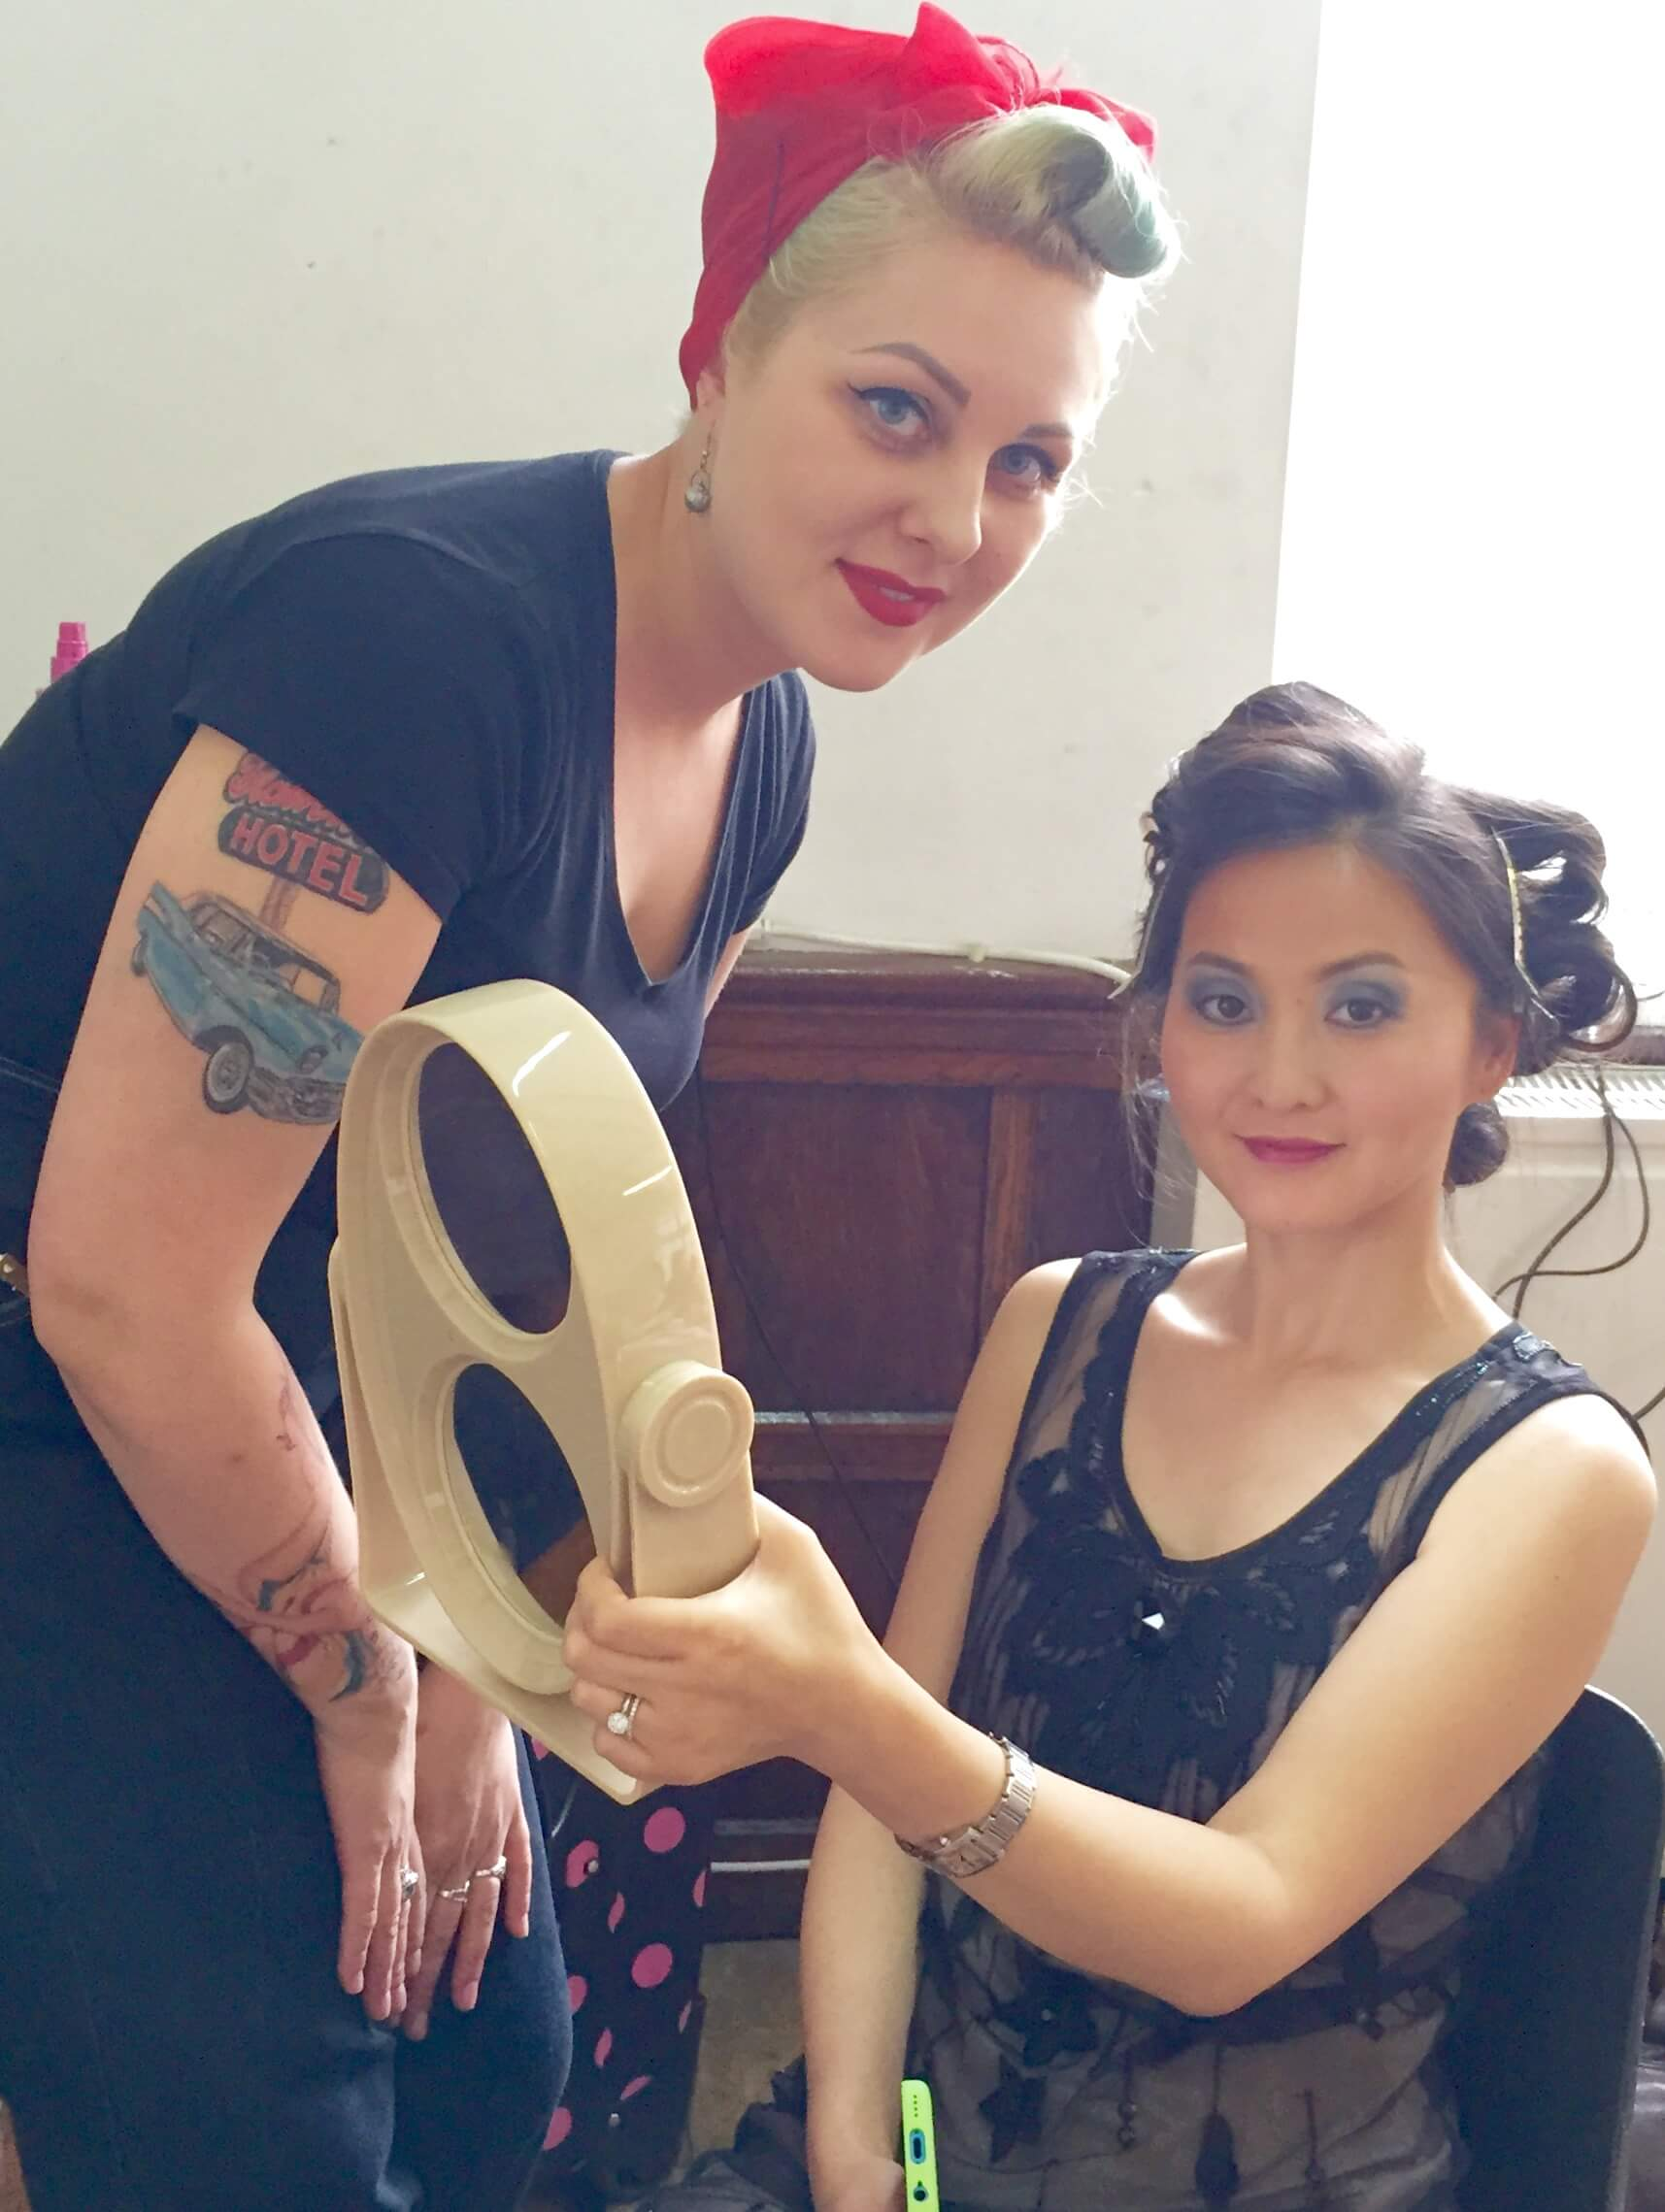 Vintage Hair and make-up at Glam hatters.